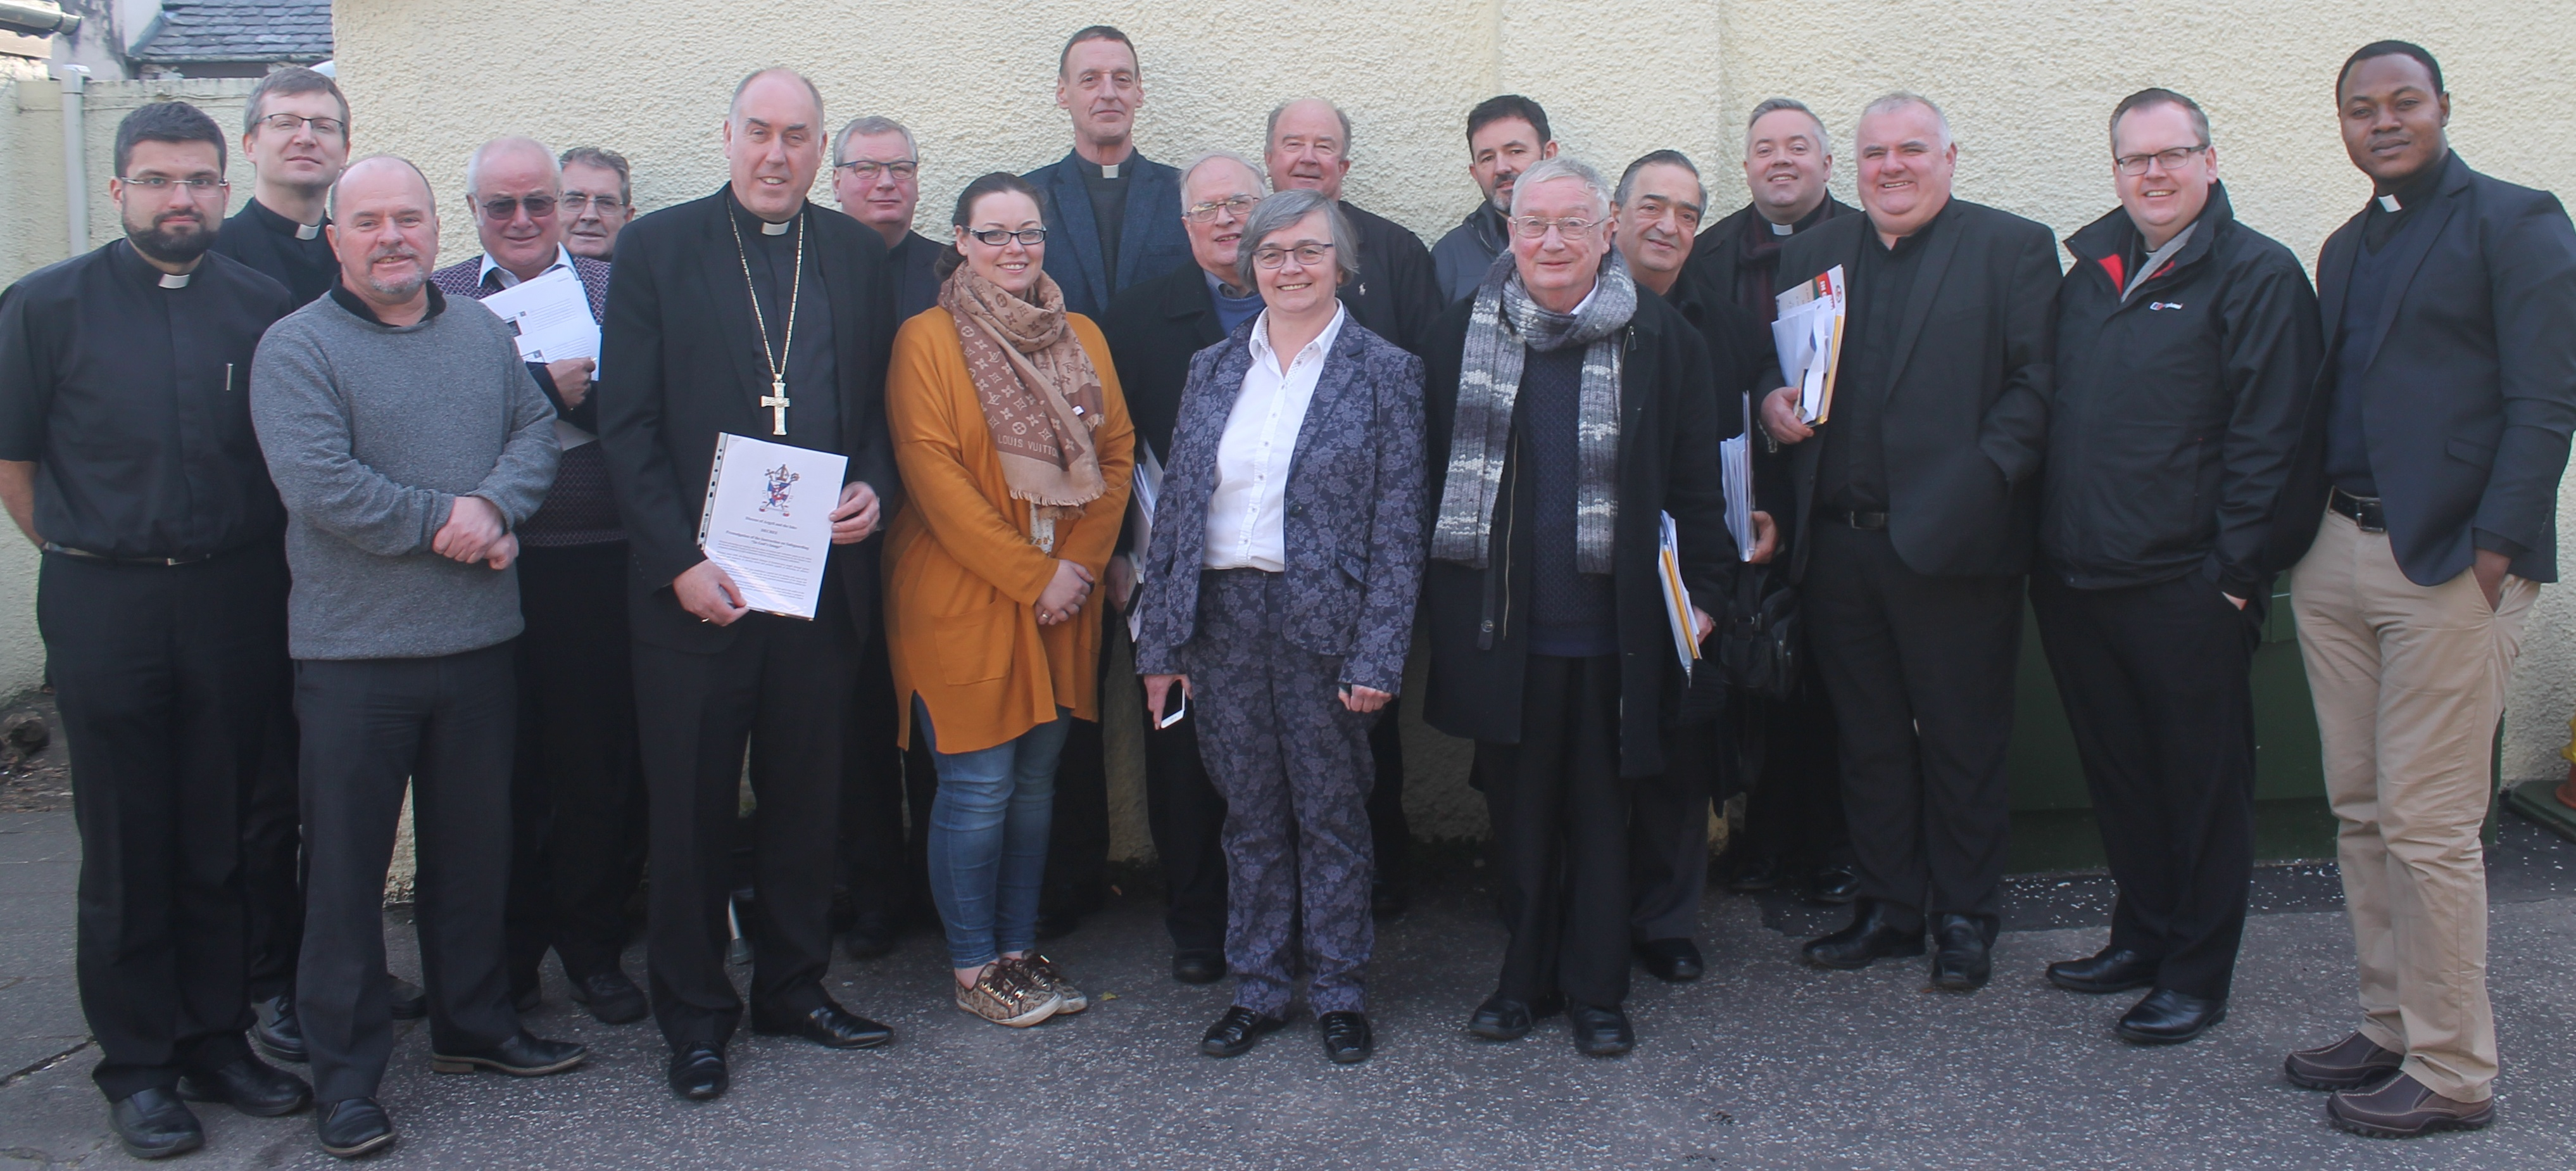 Clergy Assembly and signing of New Safeguarding Manual by Bishop Brian